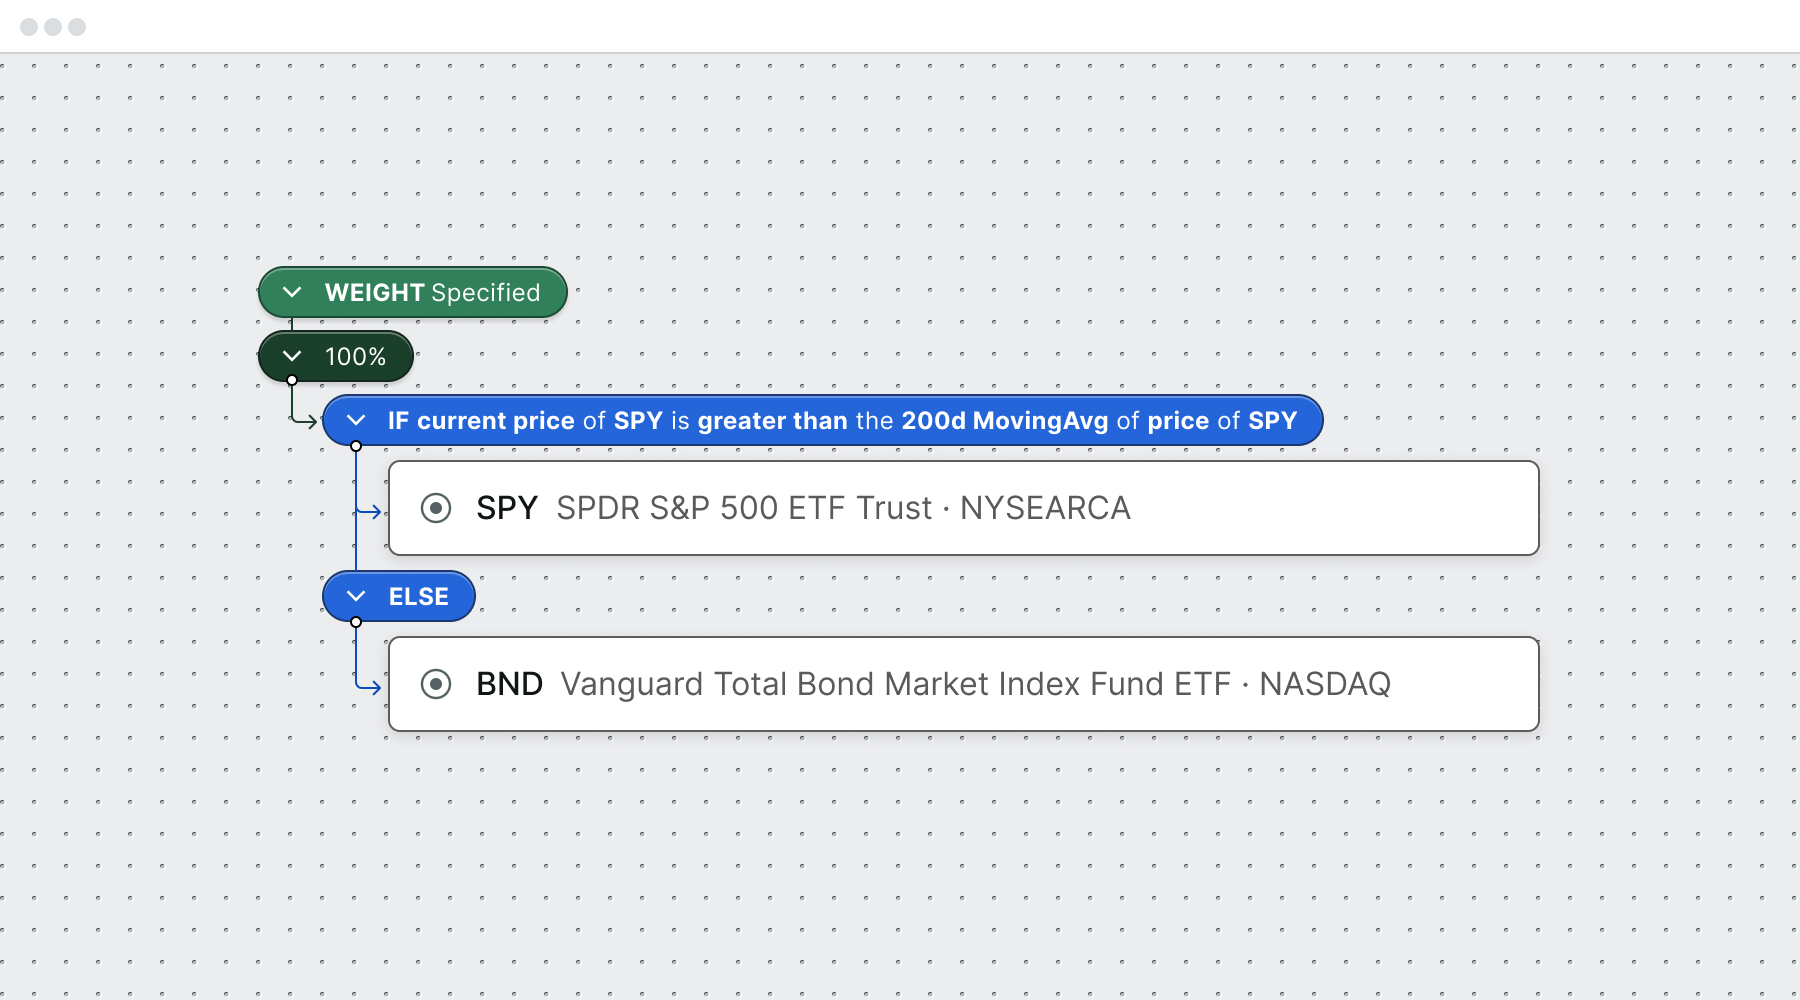 Conditional: If the current price of SPY is greater than it's 200d Moving Average, then put 100% of funds into SPY; Else, put them into BND.